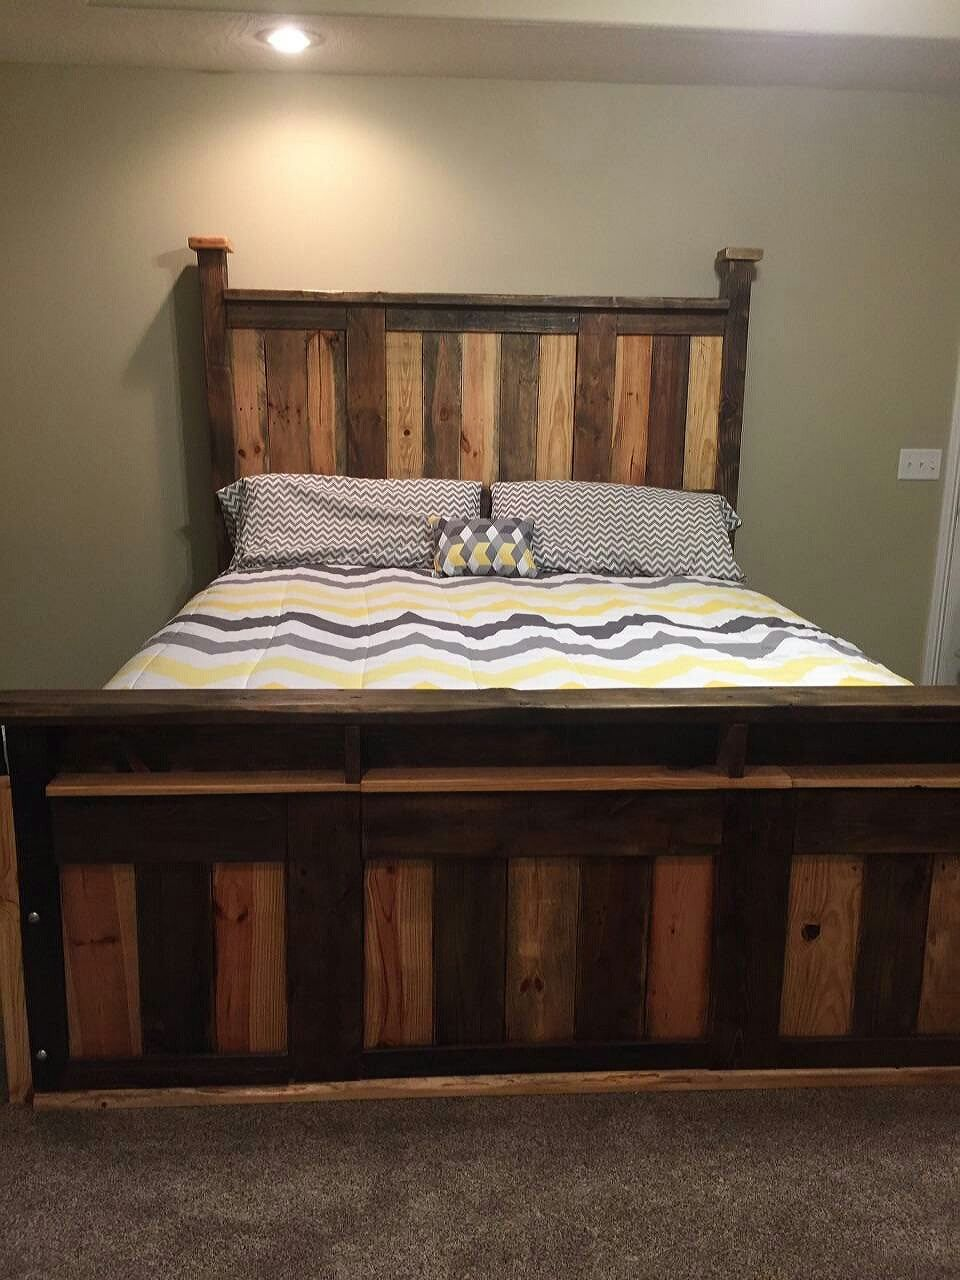 All products bedroom beds amp headboards headboards - Two Toned Pallet King Size Bed Frame Diy Pallet Bedroom Pallet Bed Frames Pallet Headboards